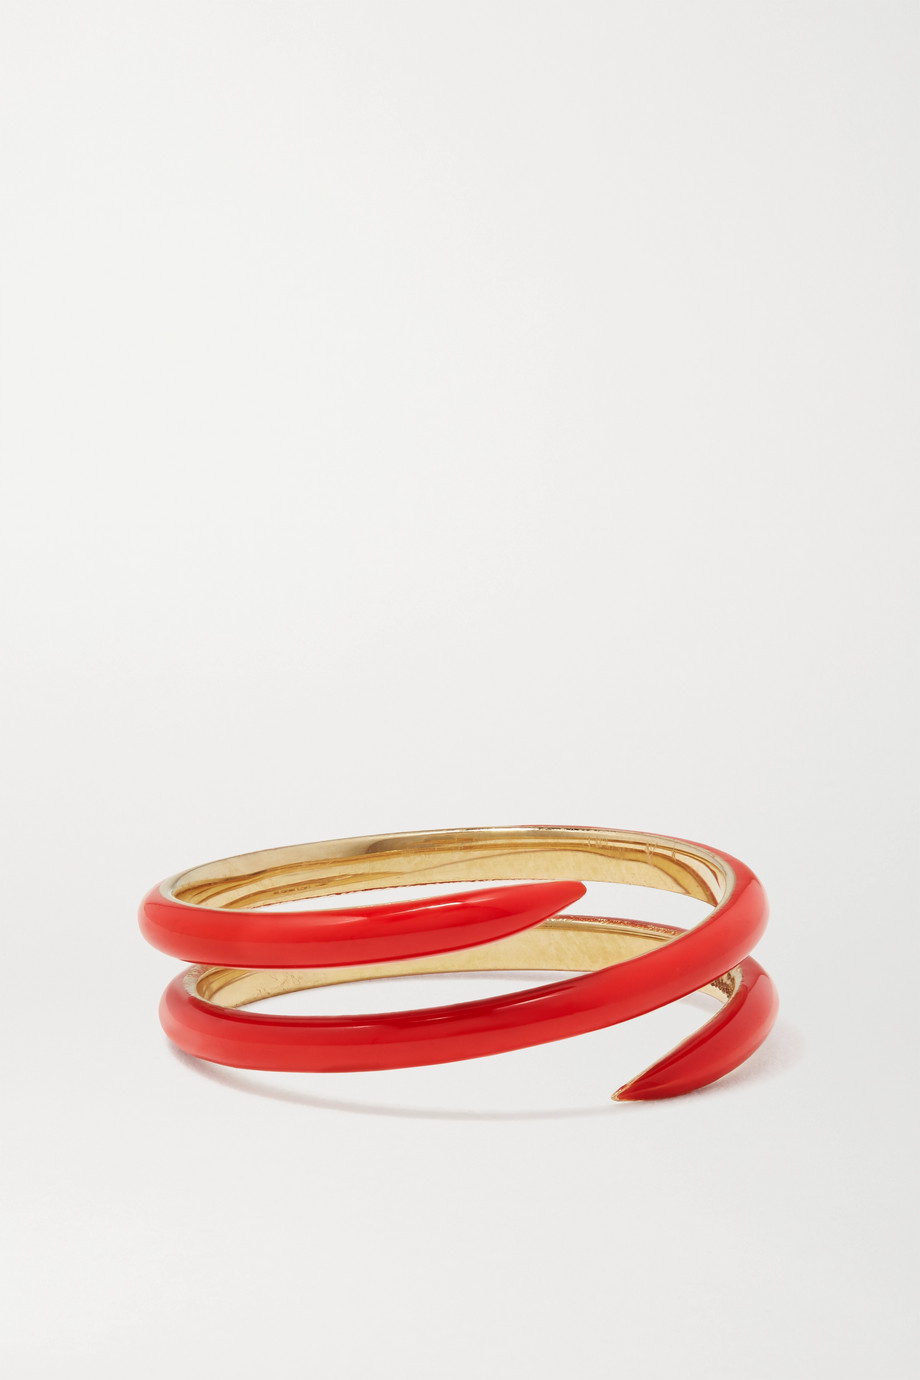 ALISON LOU Coil 14-karat gold and enamel ring